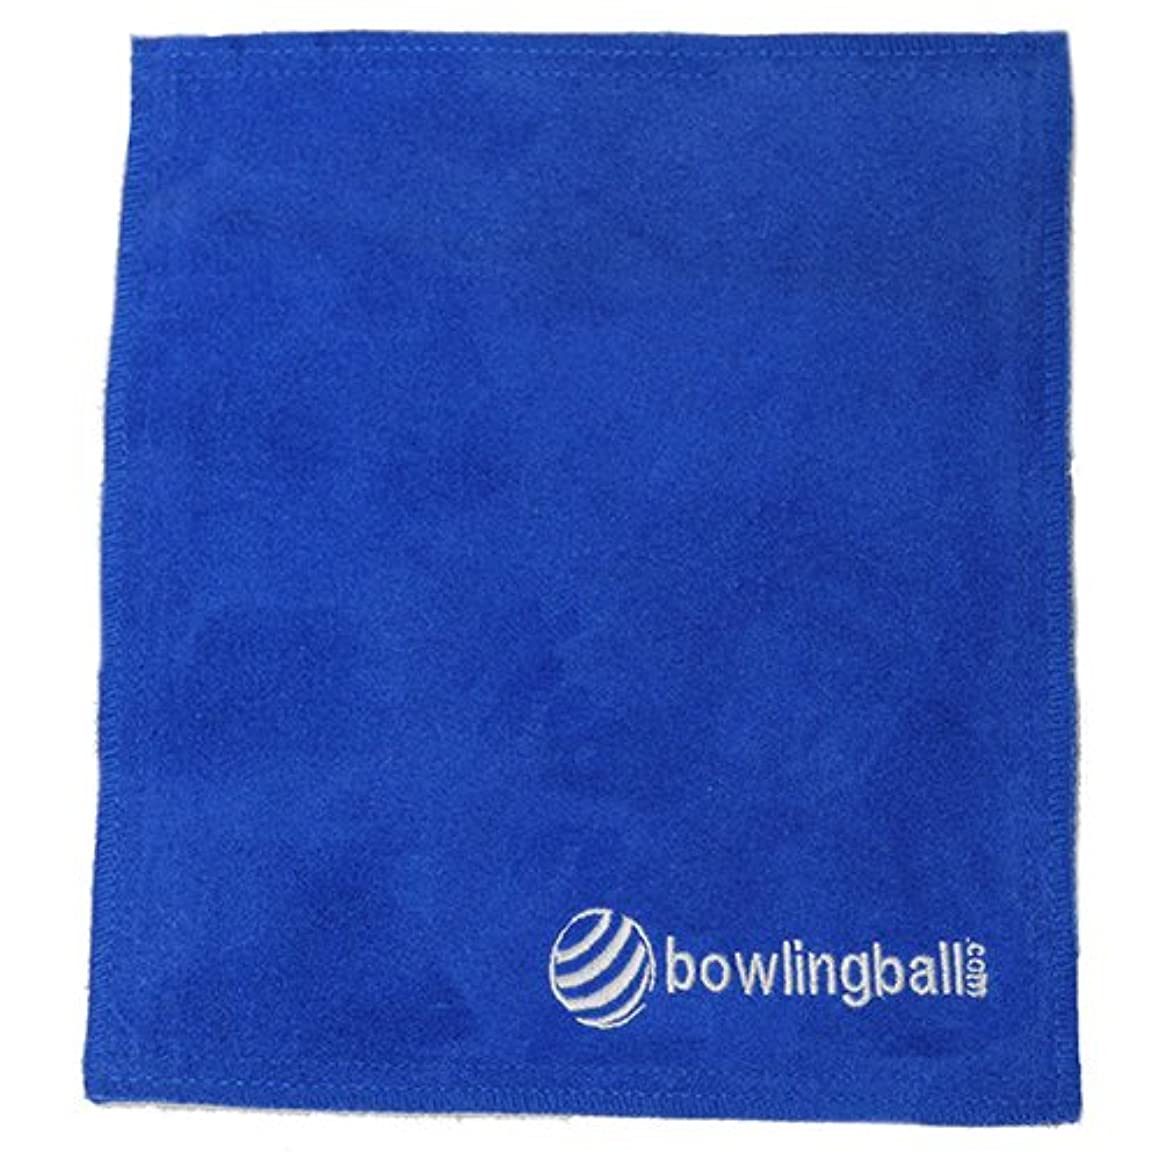 bowlingball.com Leather Bowling Shammy Pad